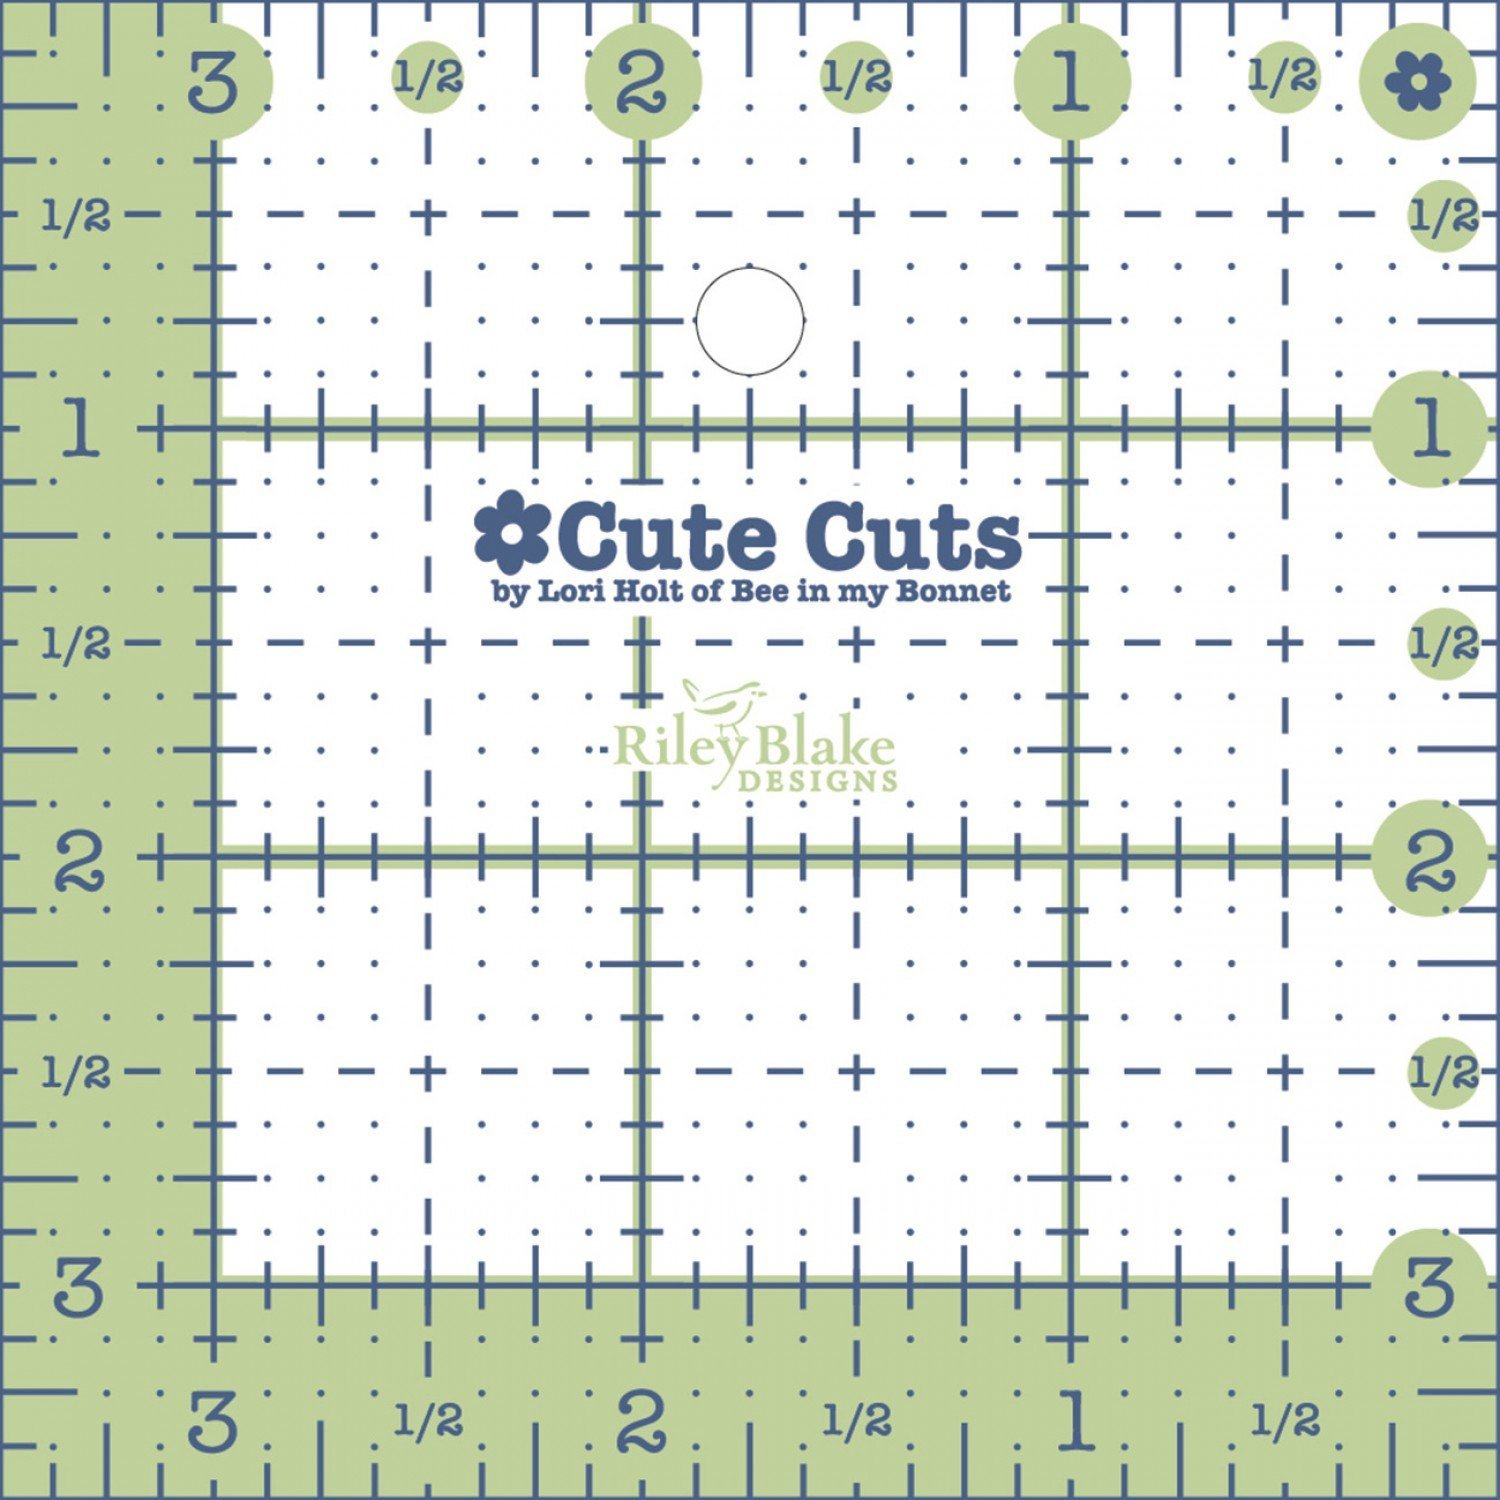 Lori Holt Cute Cuts Square Ruler - 3.5